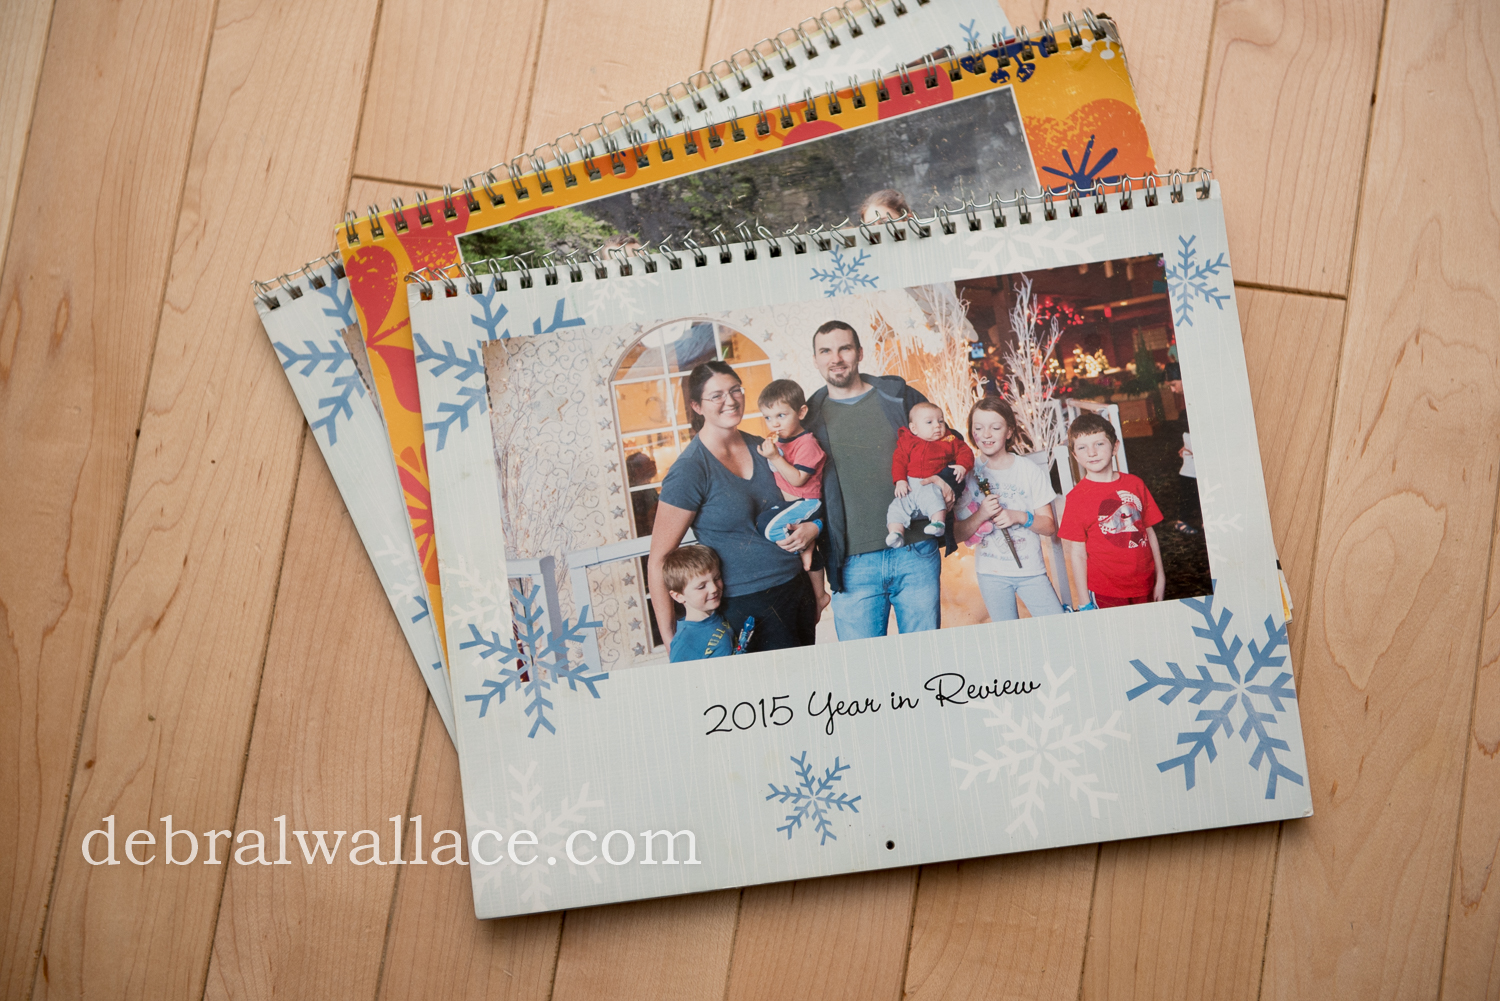 Best Places to Buy Prints and Photo Products